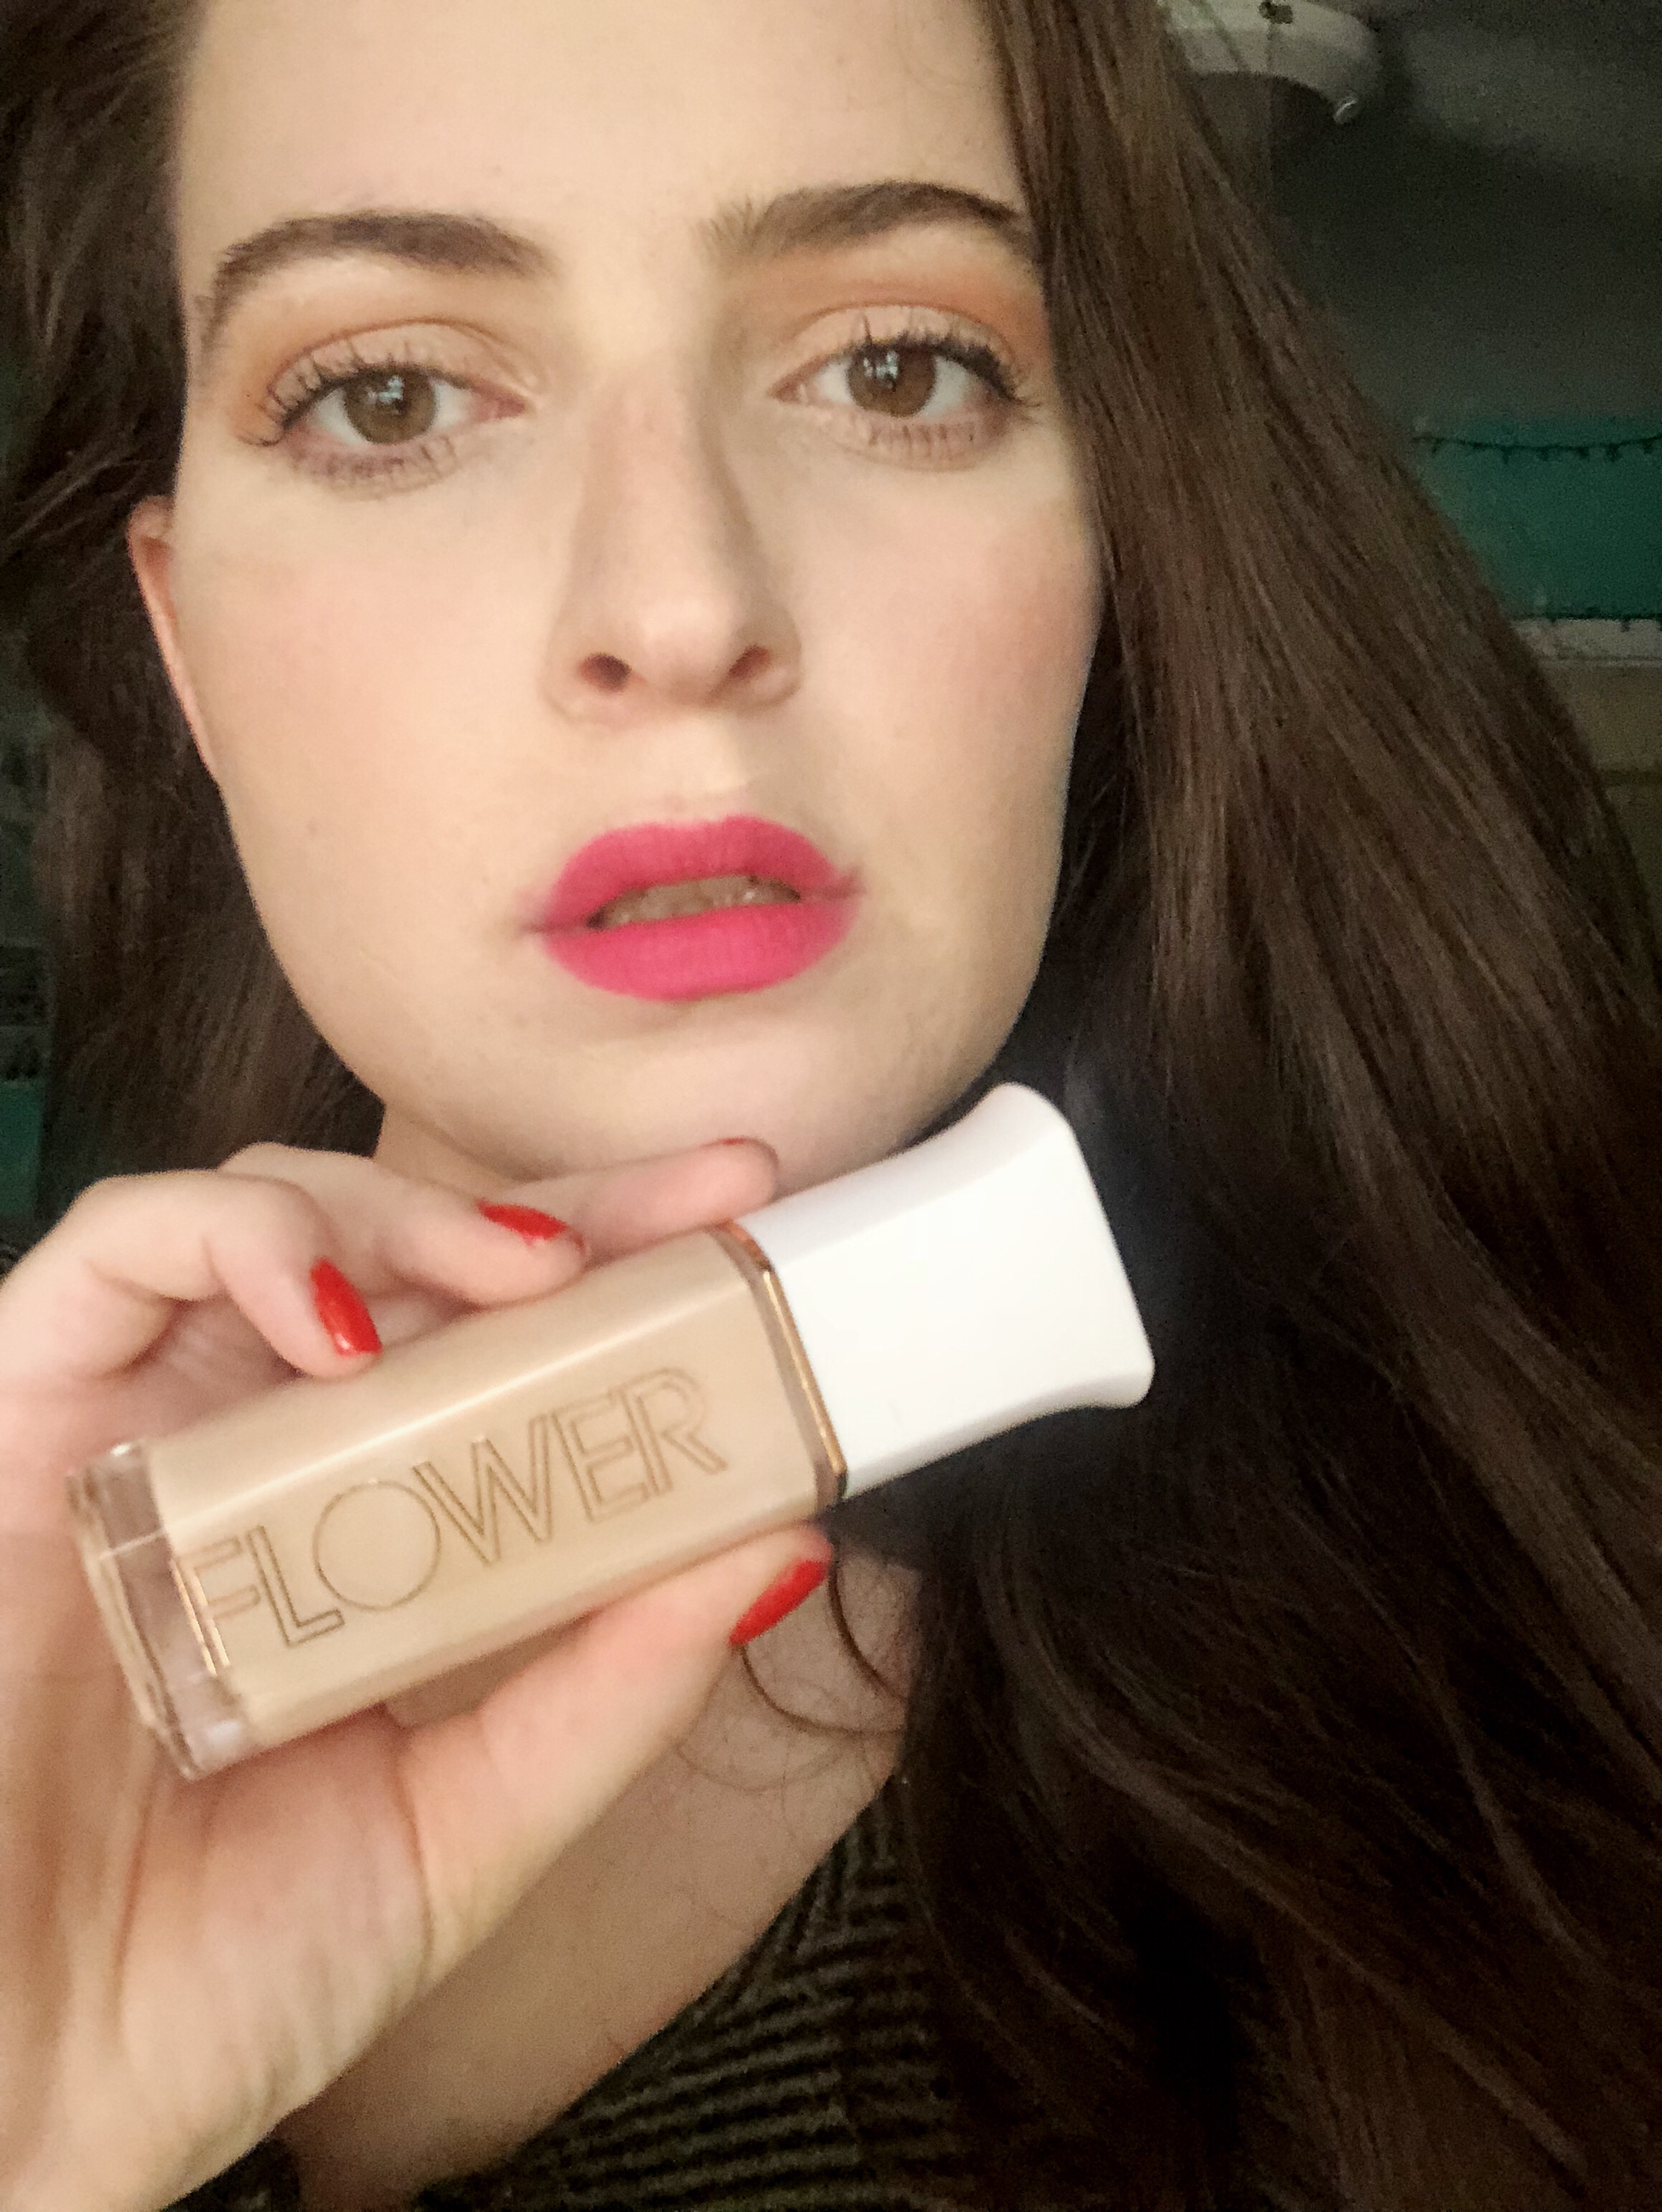 Flower beauty about face liquid foundation review simply in wonderland x linda idalys izmirmasajfo